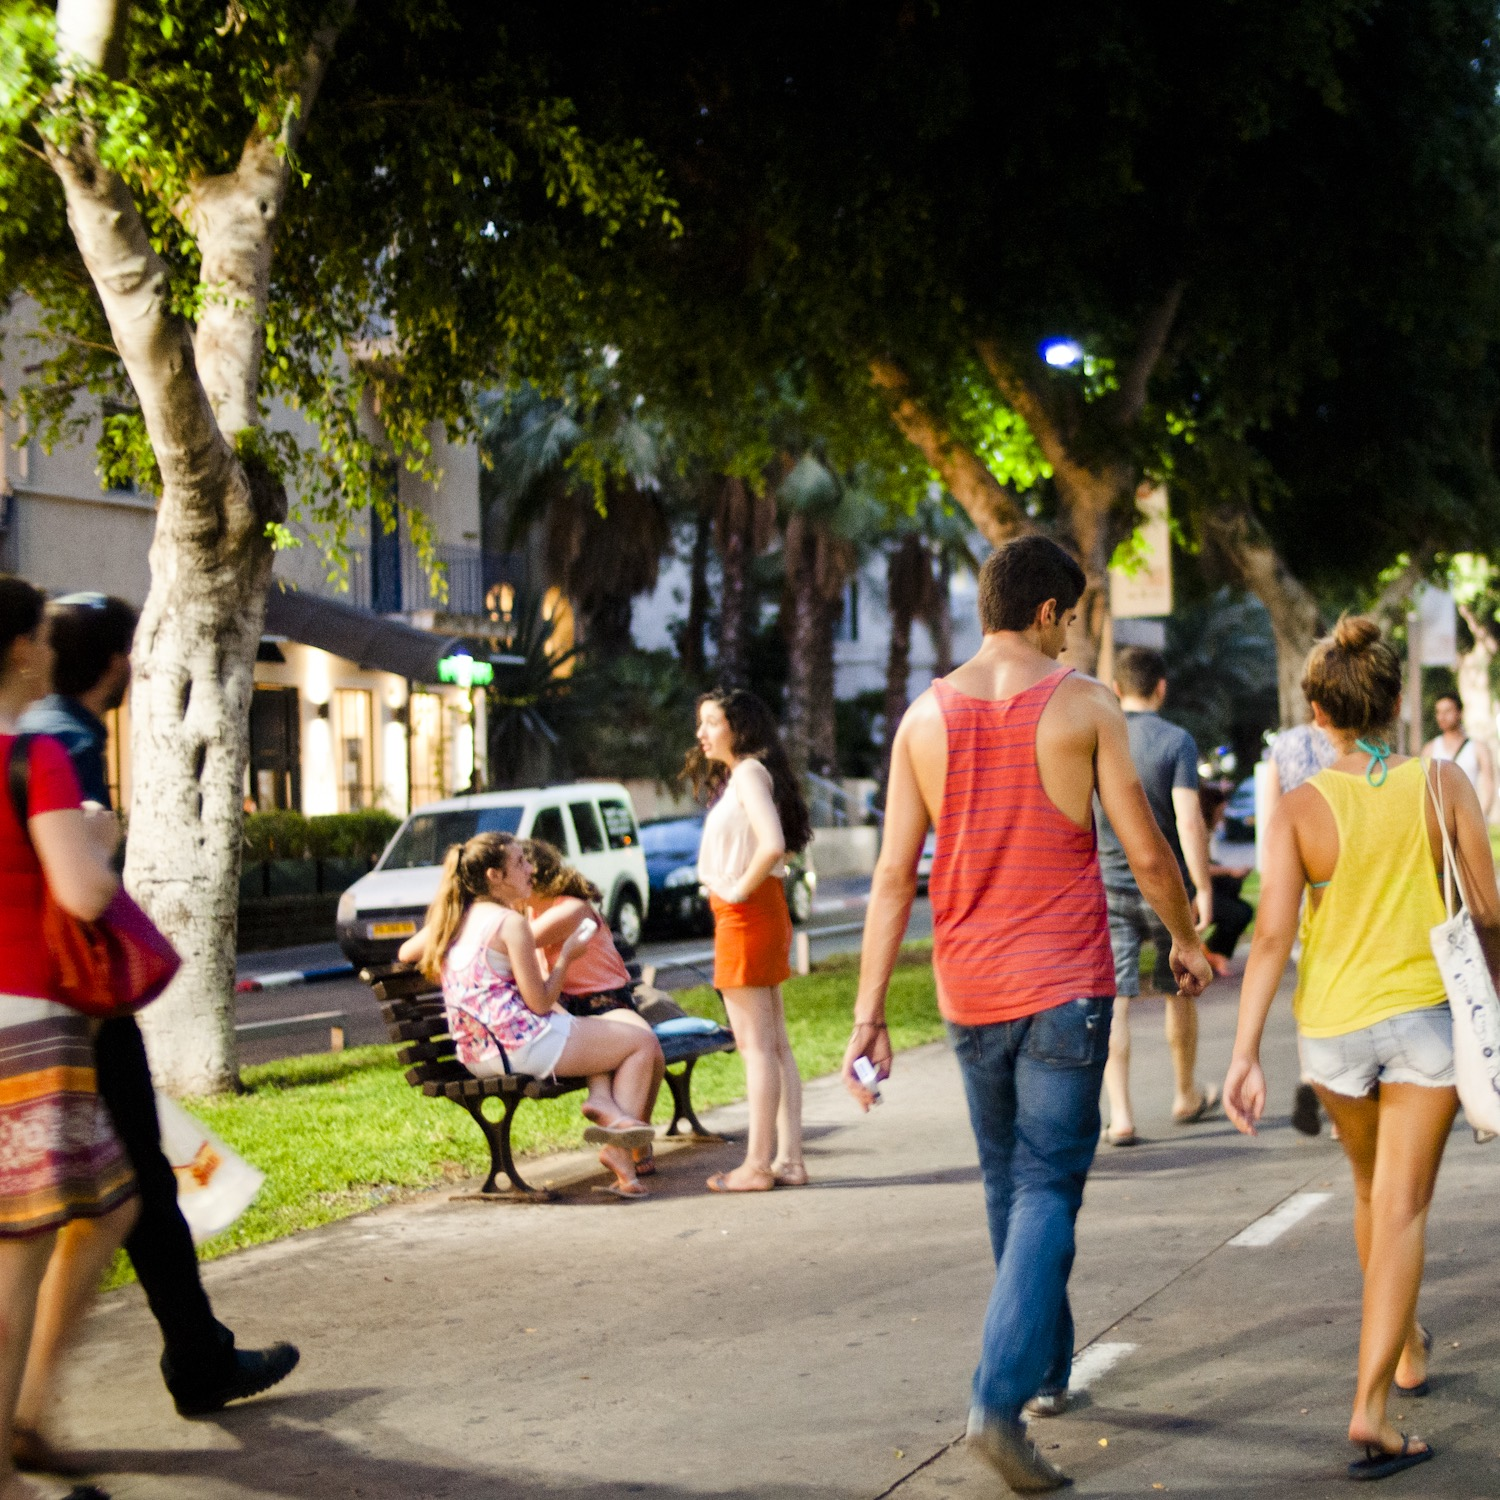 Walking the tree-lined central boulevard of Sderot Rothschild.Photo by and ©Vision Studio